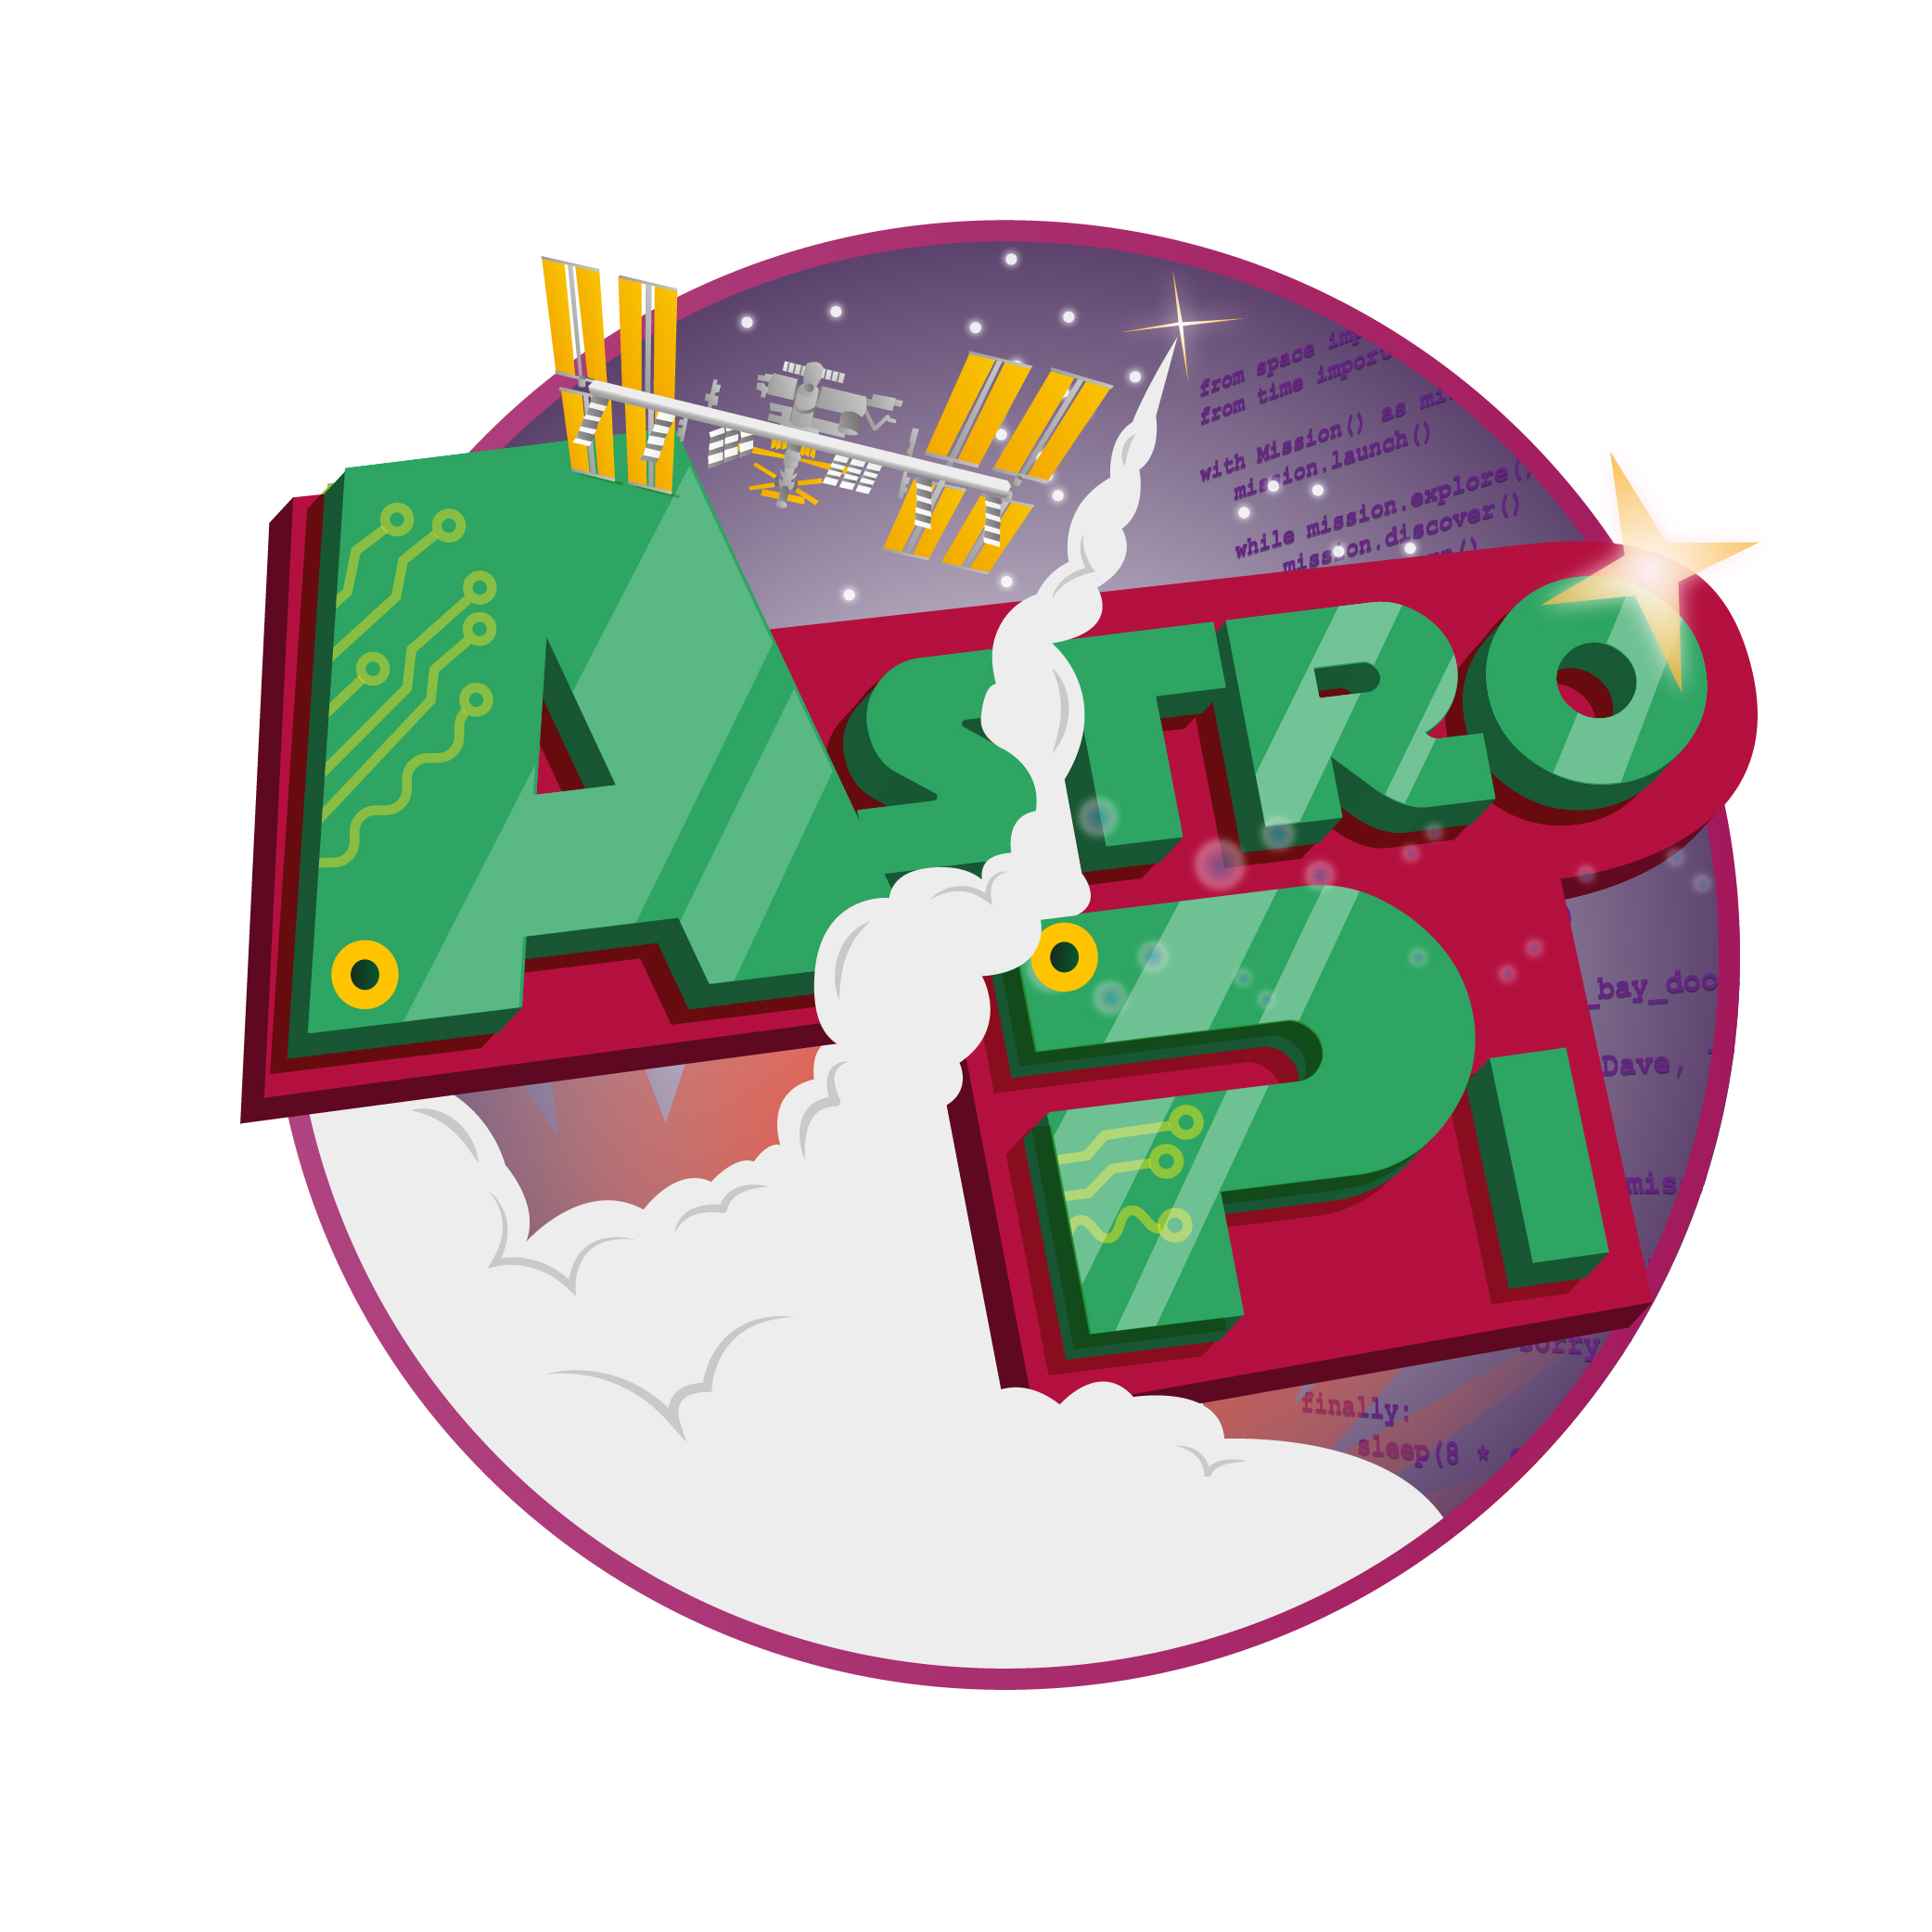 astro pi.png